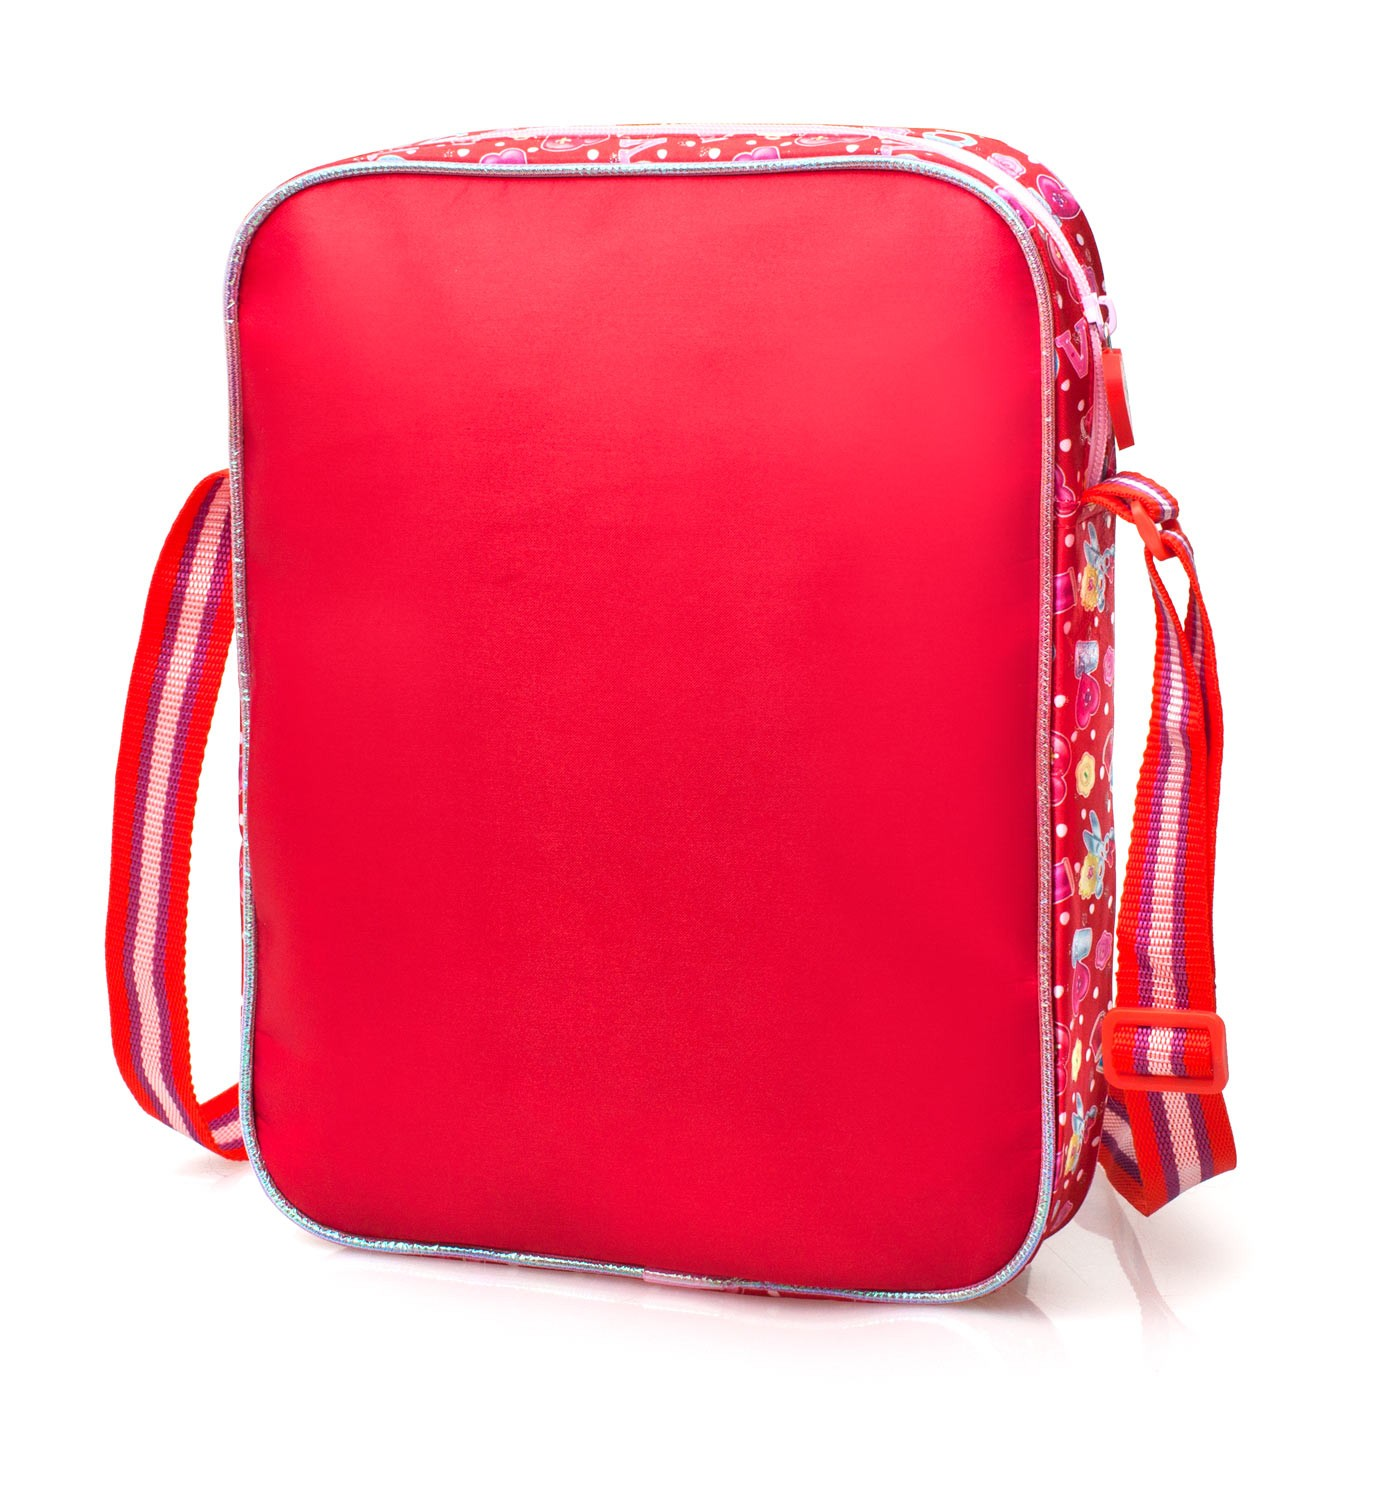 Disney Minnie Mouse Red Tablet Shoulder Bag – image 2